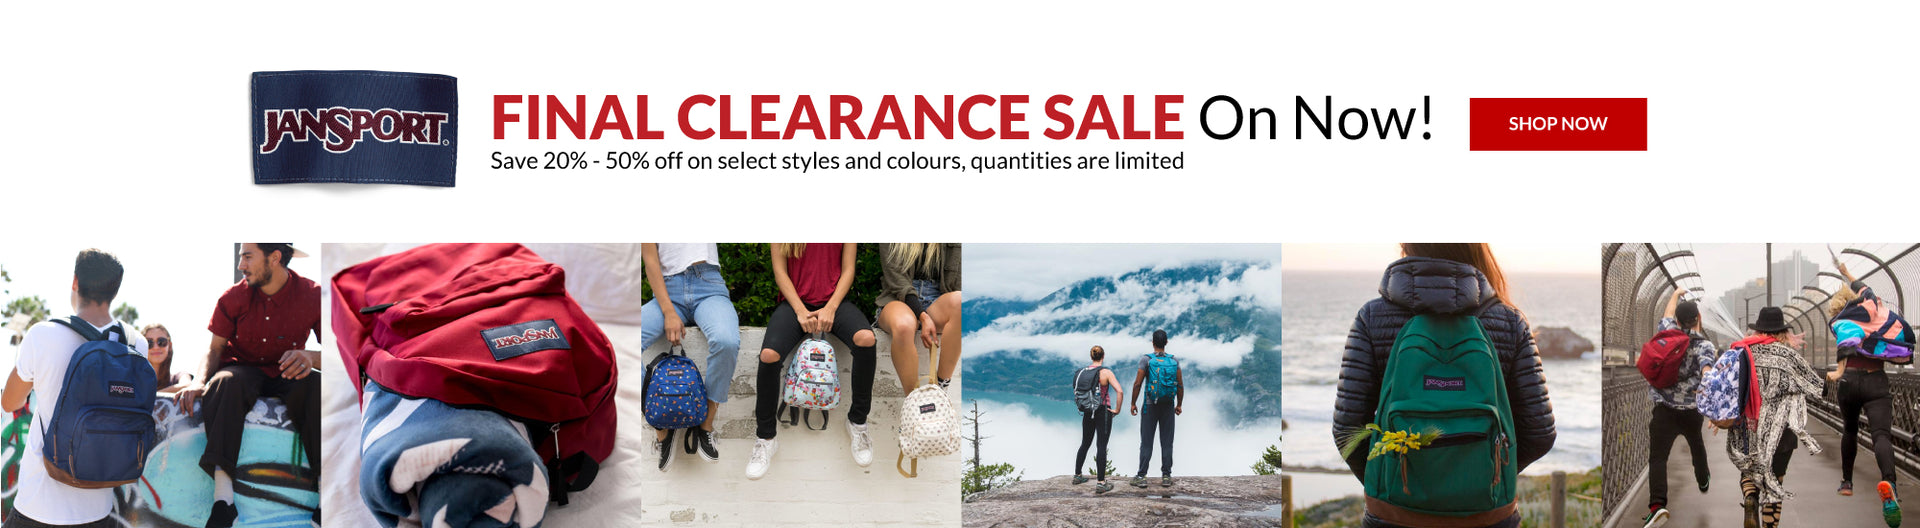 JanSport Clearance Sale - Canada Luggage Depot